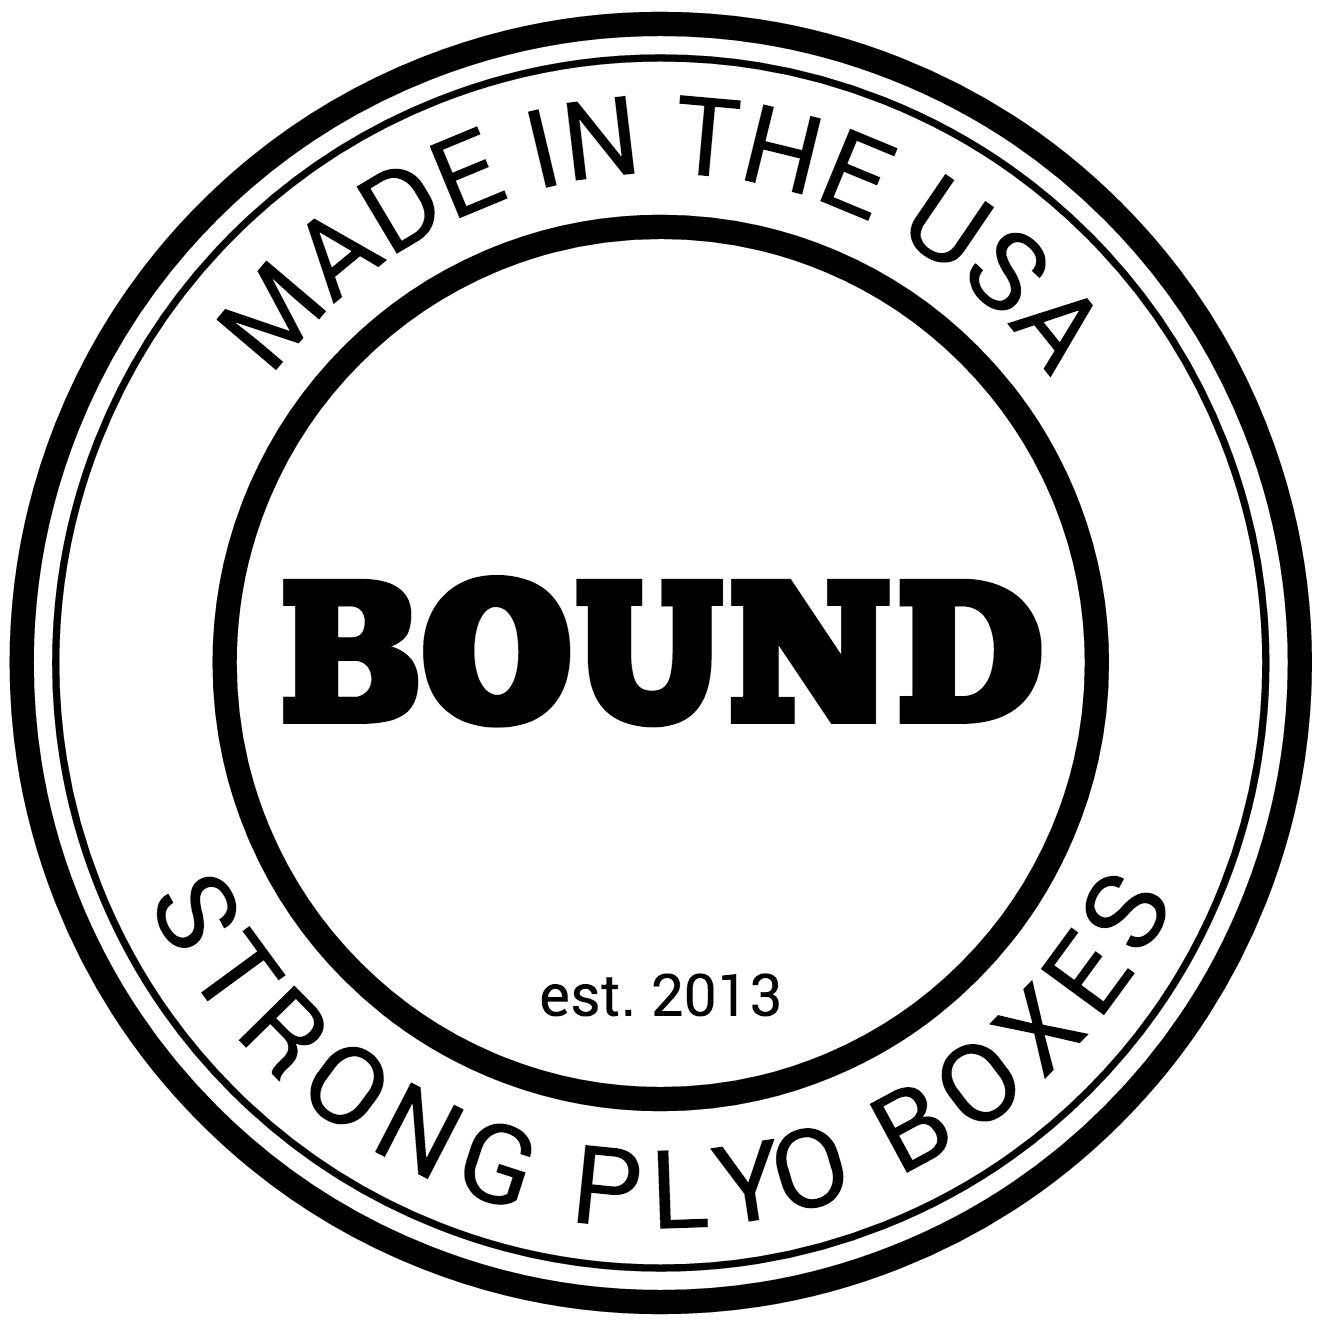 (20/24/30) Bound Plyo Box 3-in-1 Wood Puzzle Plyometric Box - CrossFit Training, MMA, or Plyometric Agility - Jump Box, Plyobox, Plyo Box, Plyometric Box, Plyometrics Box by BOUND Plyo Box (Image #2)